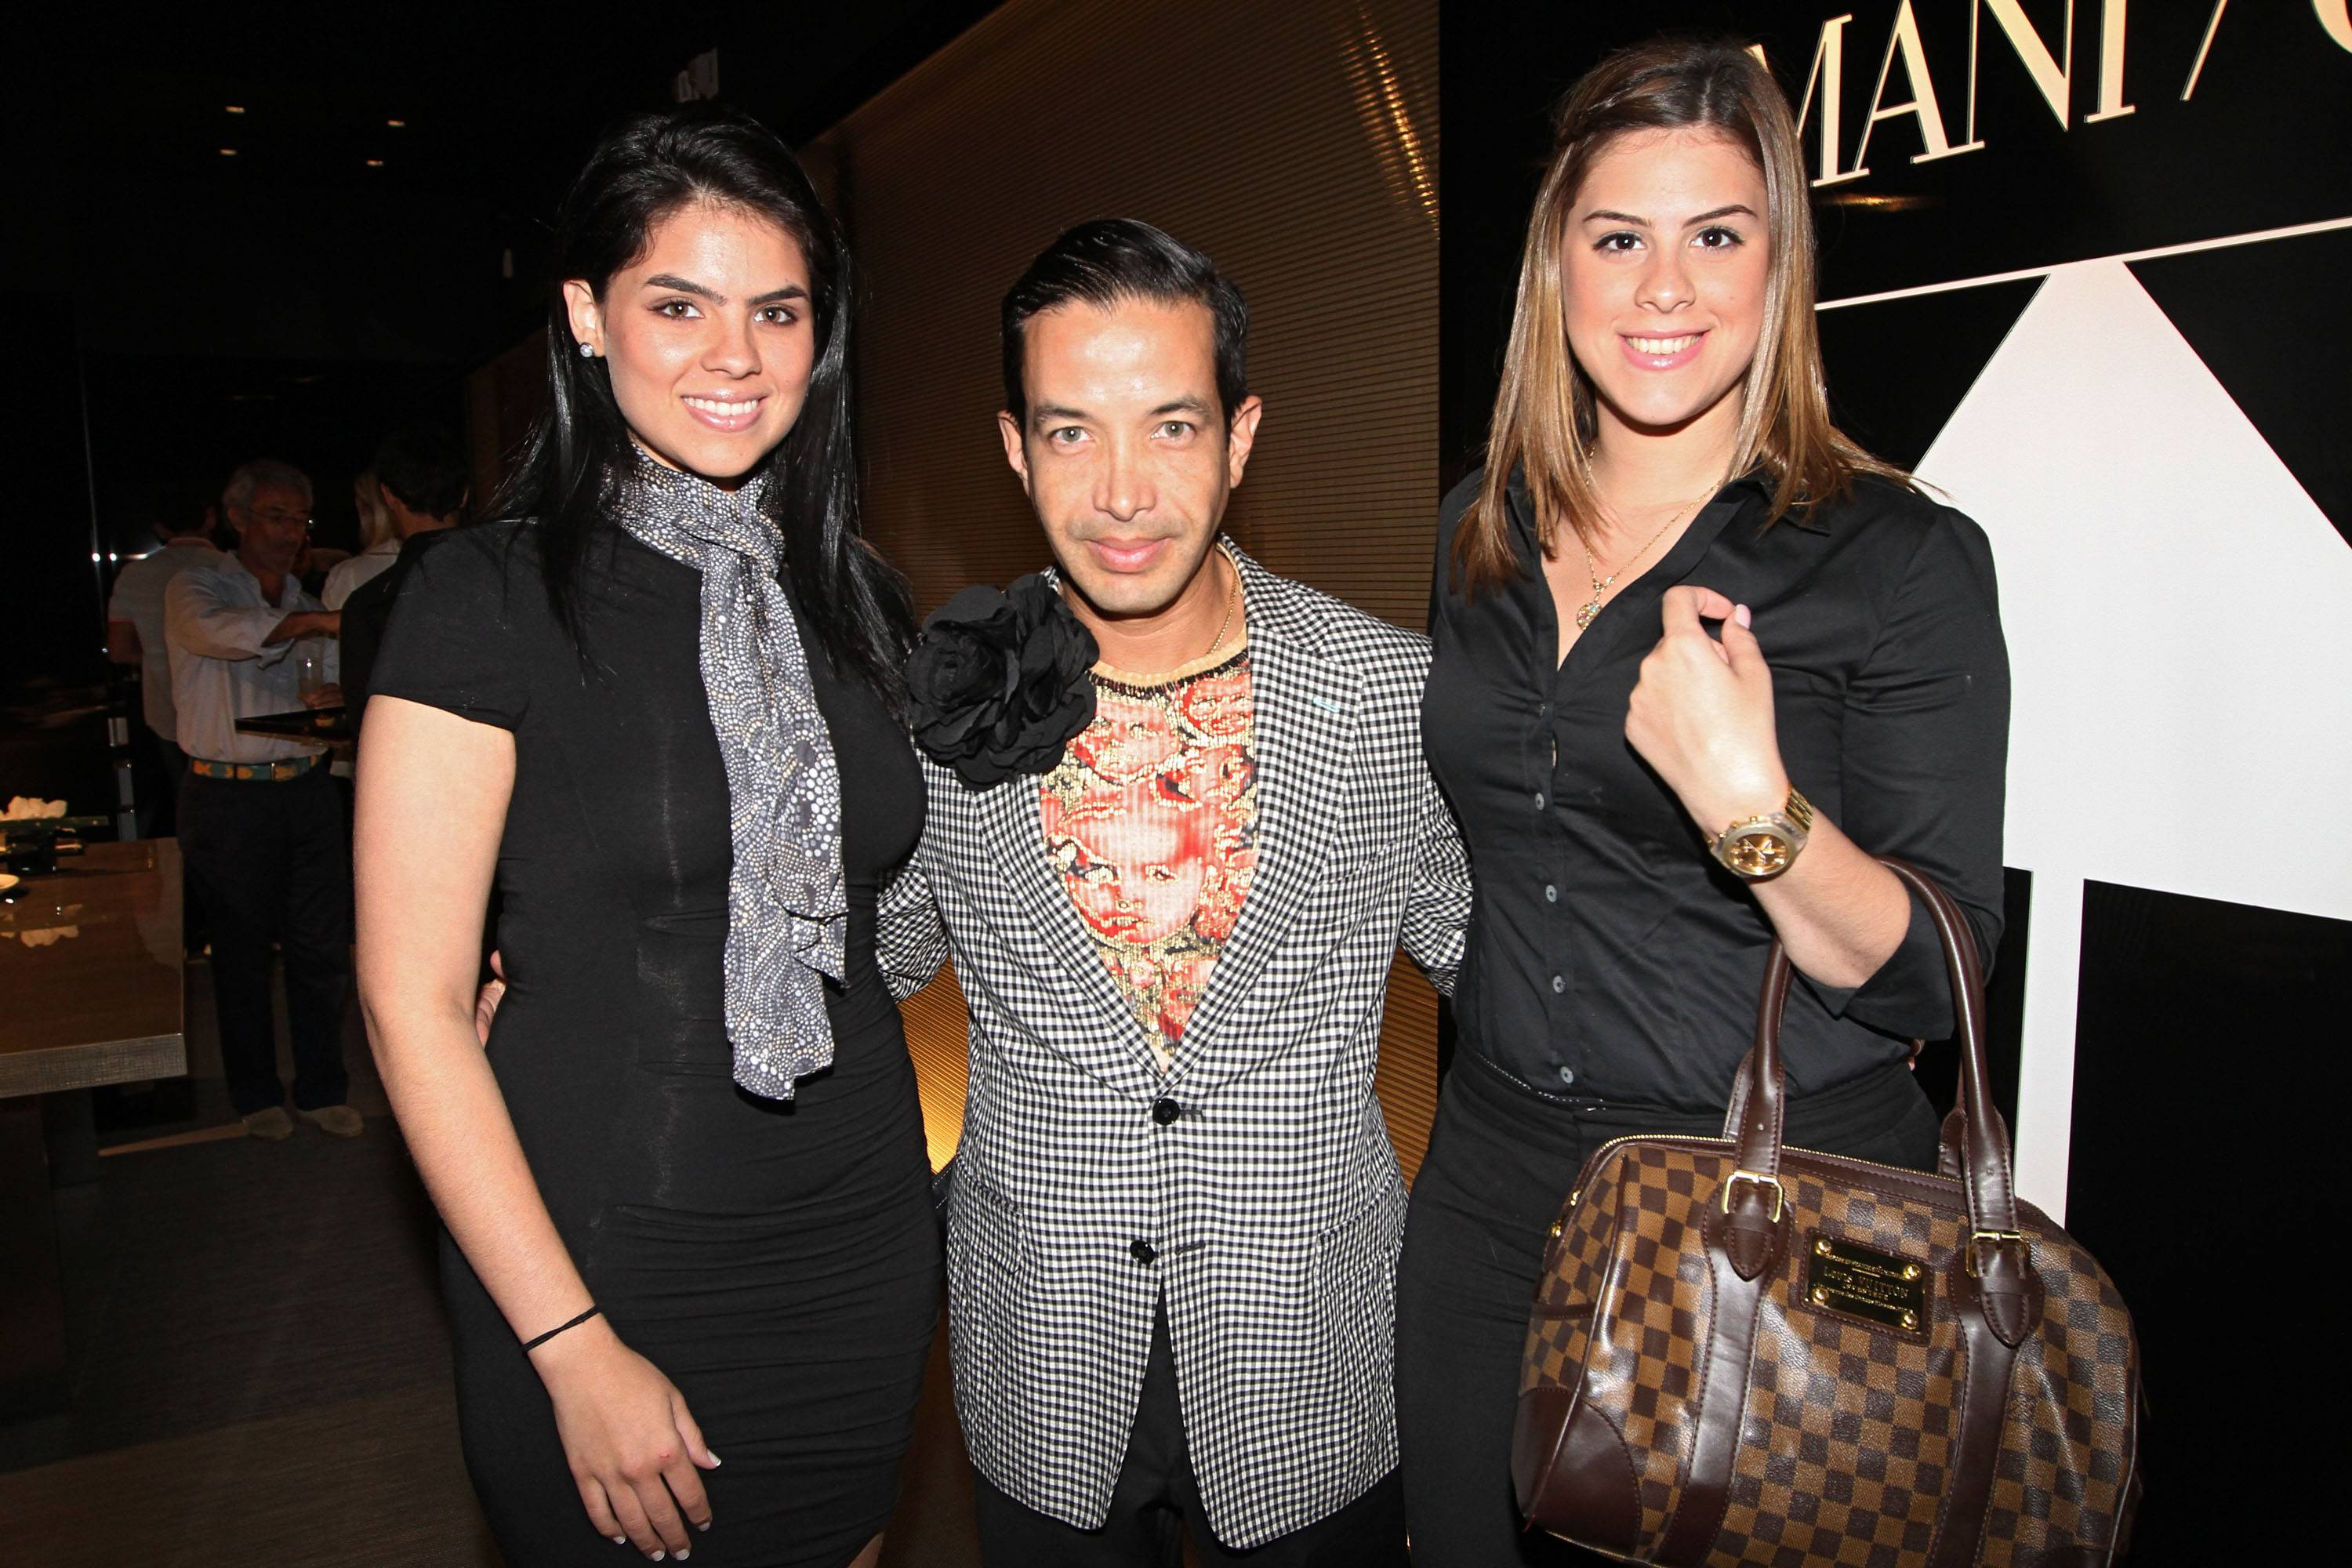 Carolina Dorrego, Antonio Cabrera and Catherine Dorrego